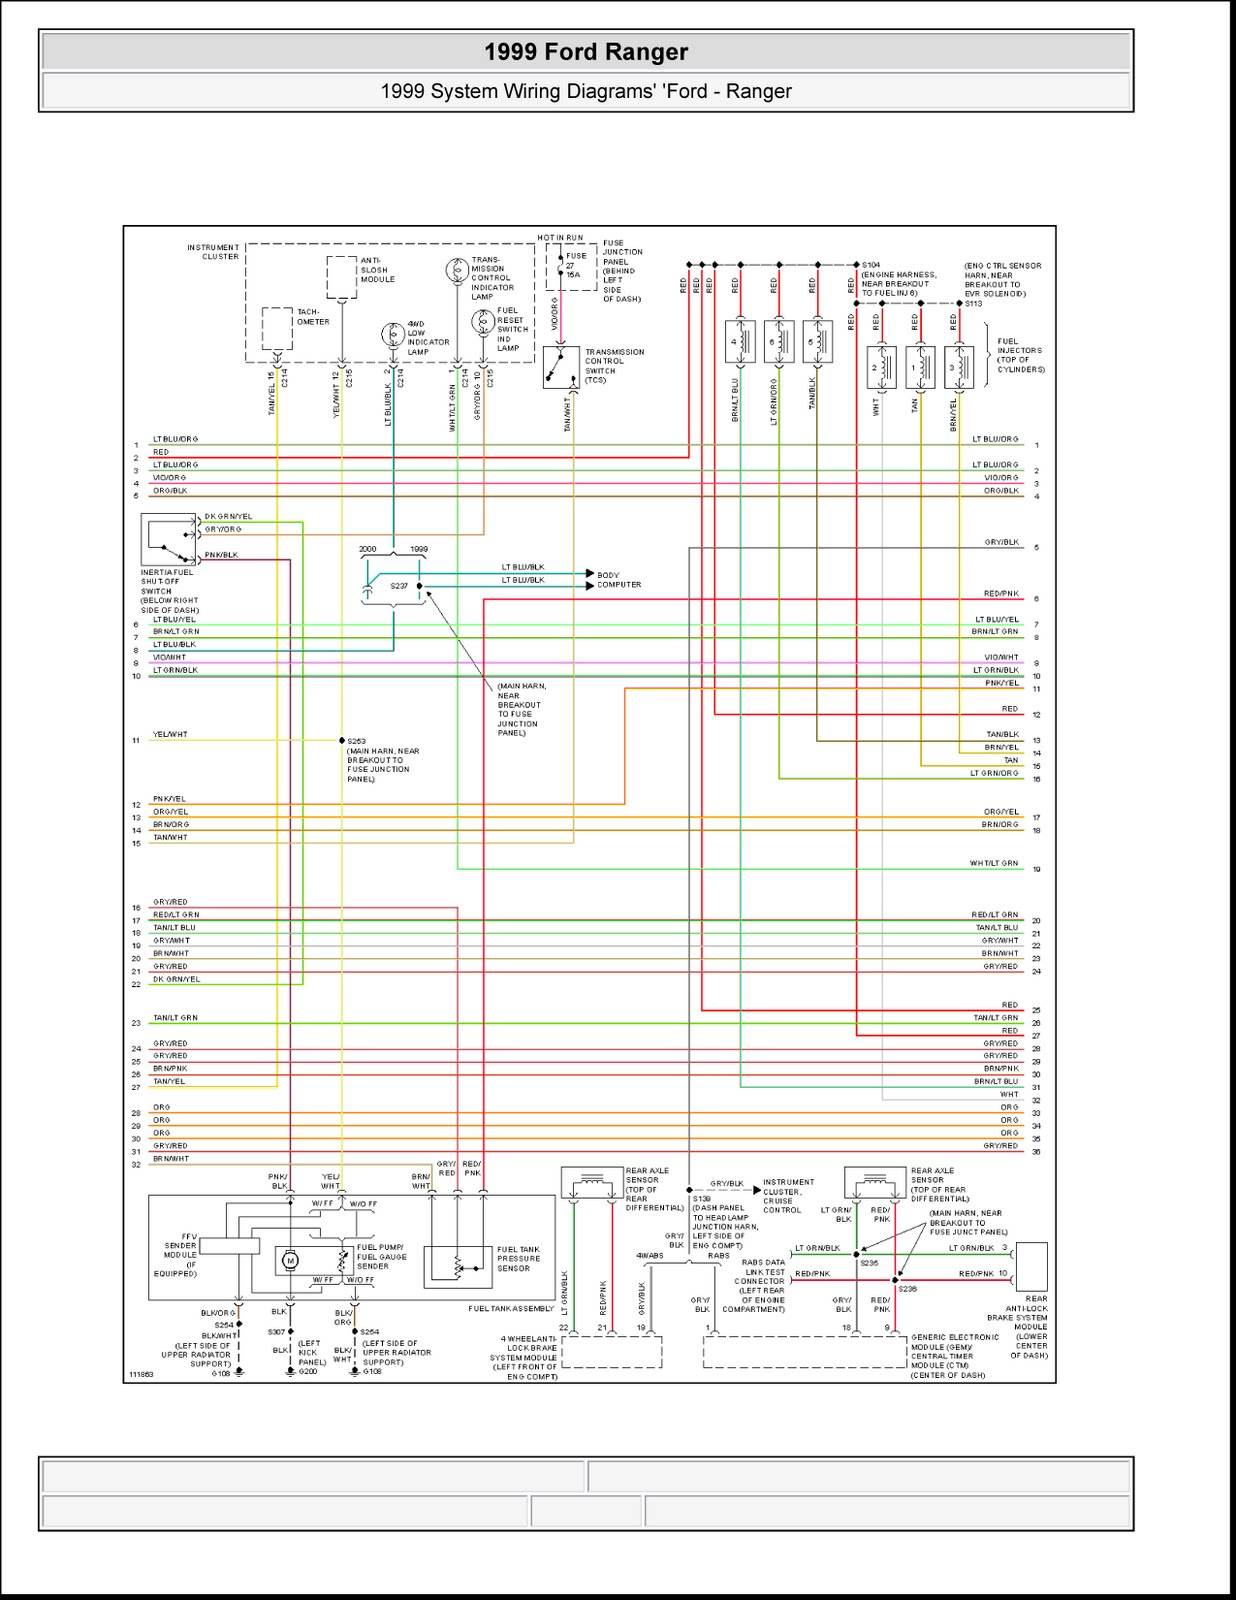 0003 1999 ford ranger system wiring diagrams 4 images wiring 1999 ford ranger ignition wiring diagram at bayanpartner.co